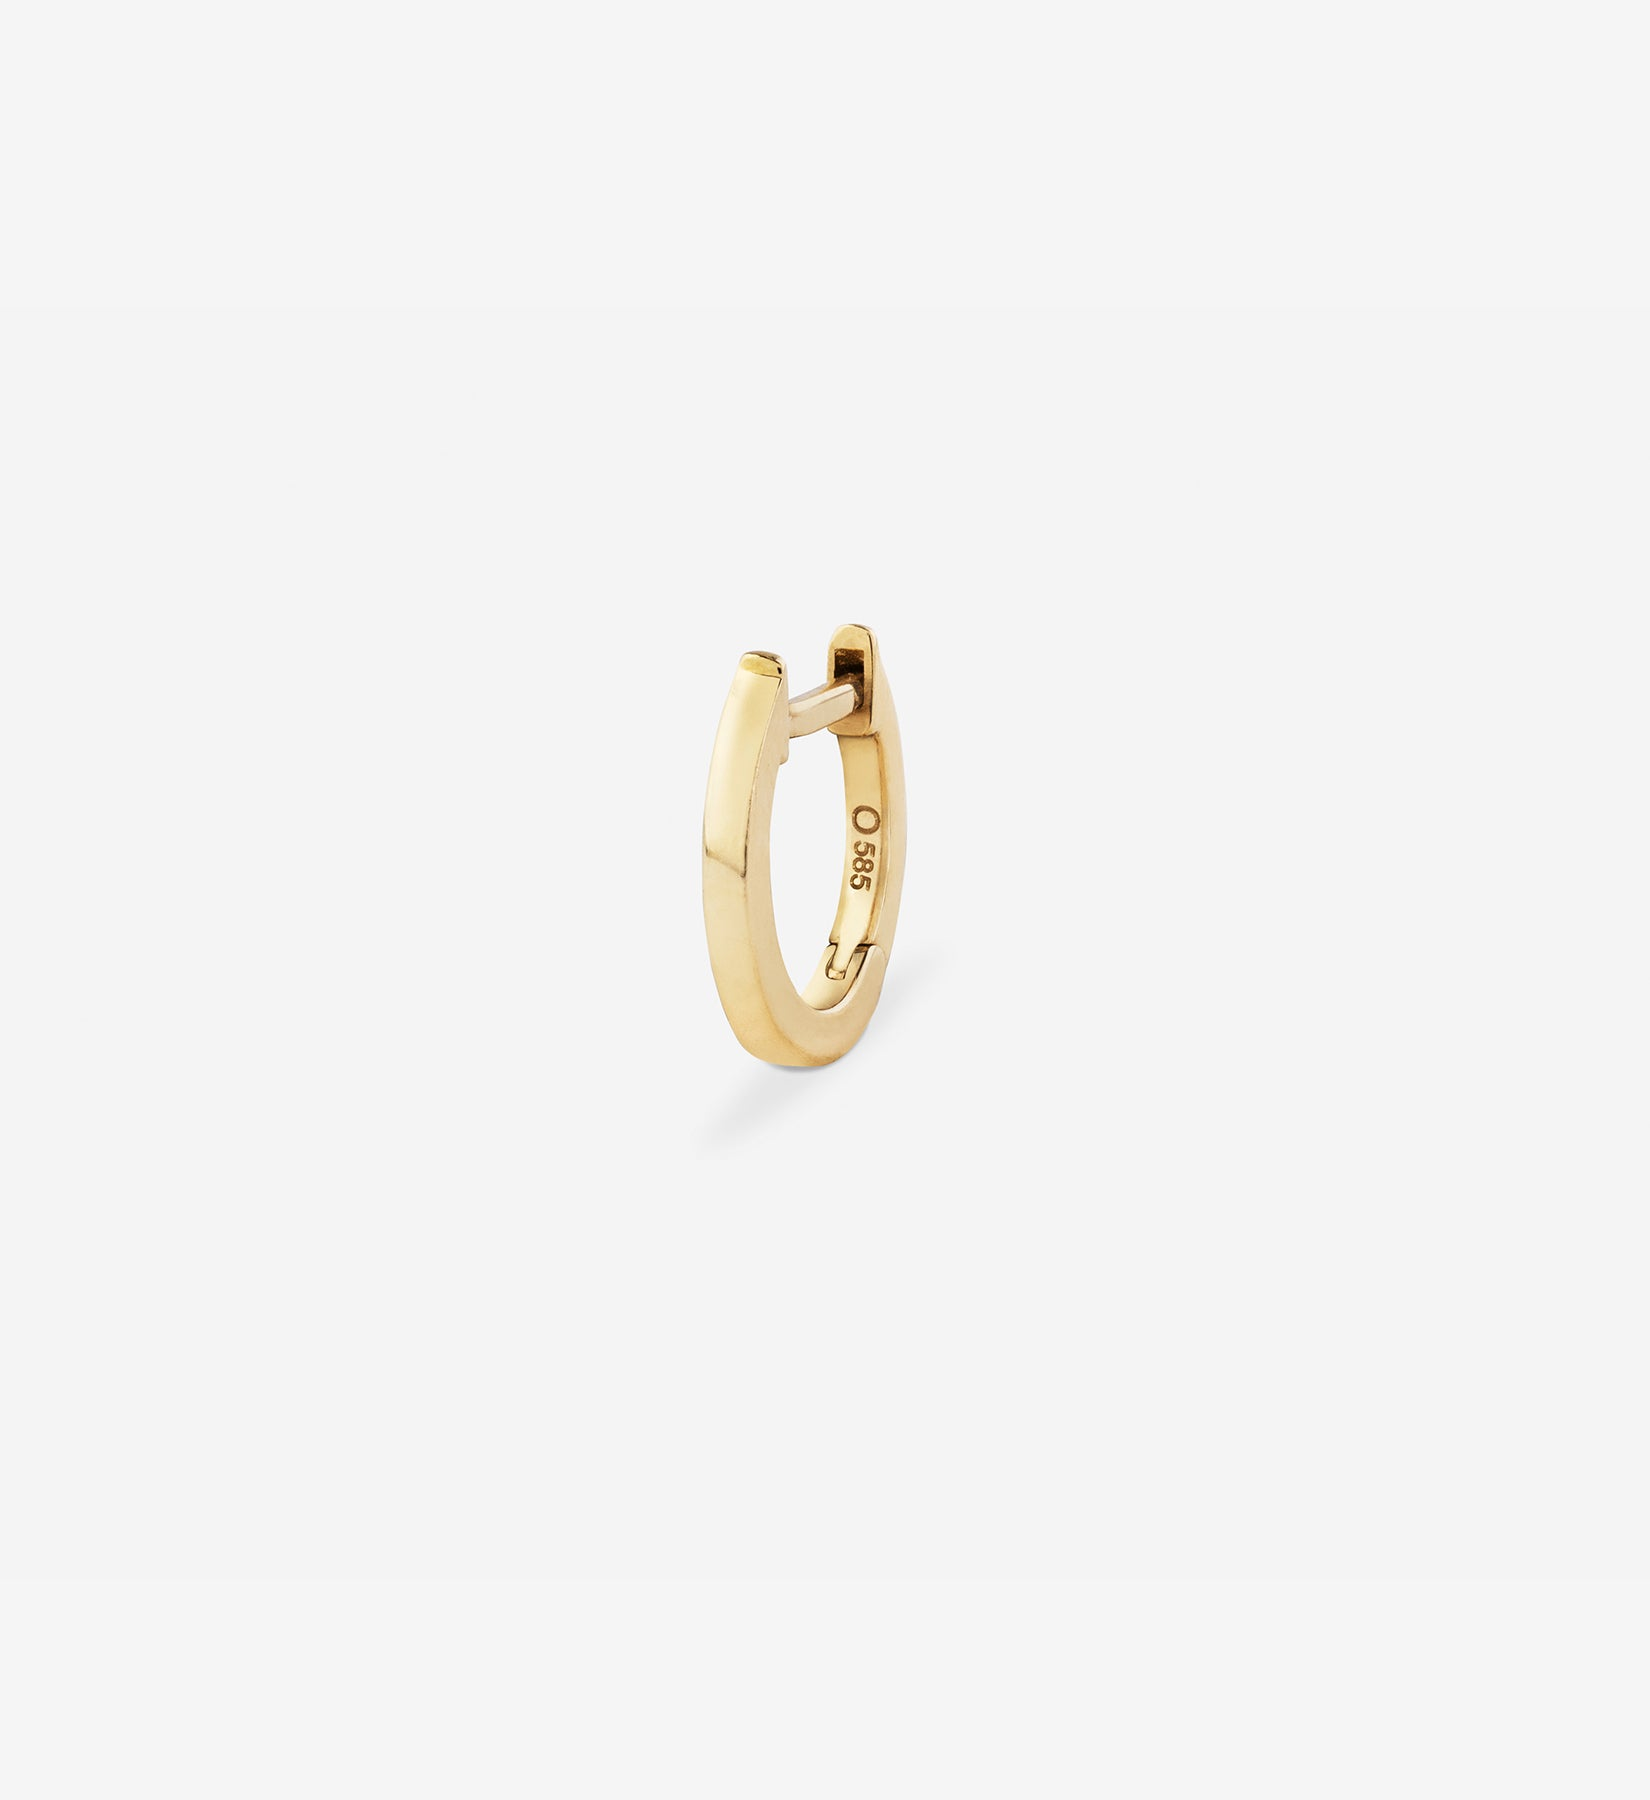 Huggie 0.00 in 14K Gold - Single